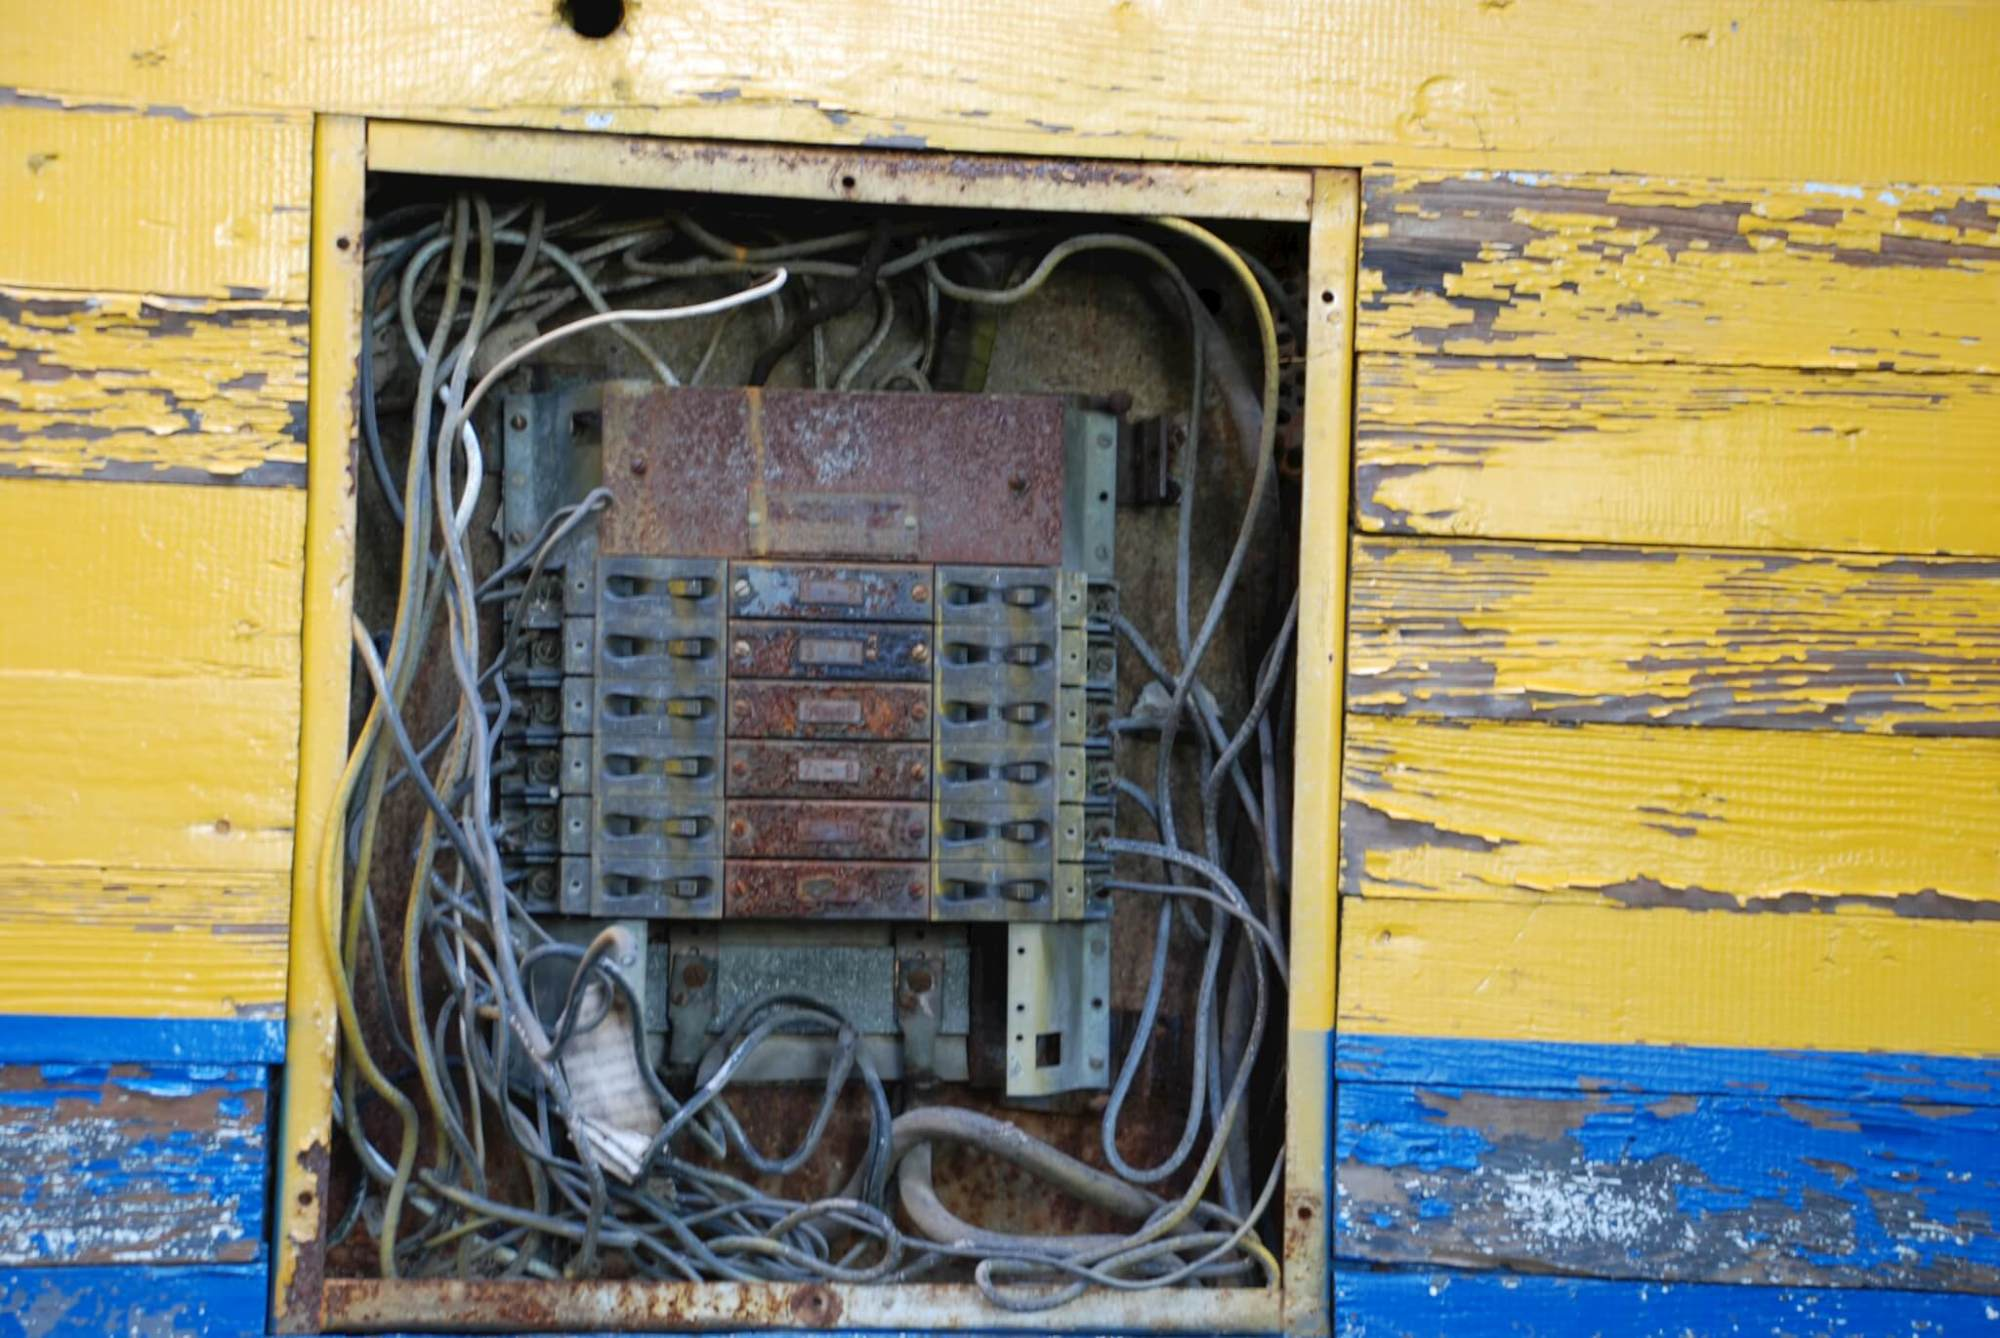 hight resolution of if you electrical panel looks like this call an electrician immediately